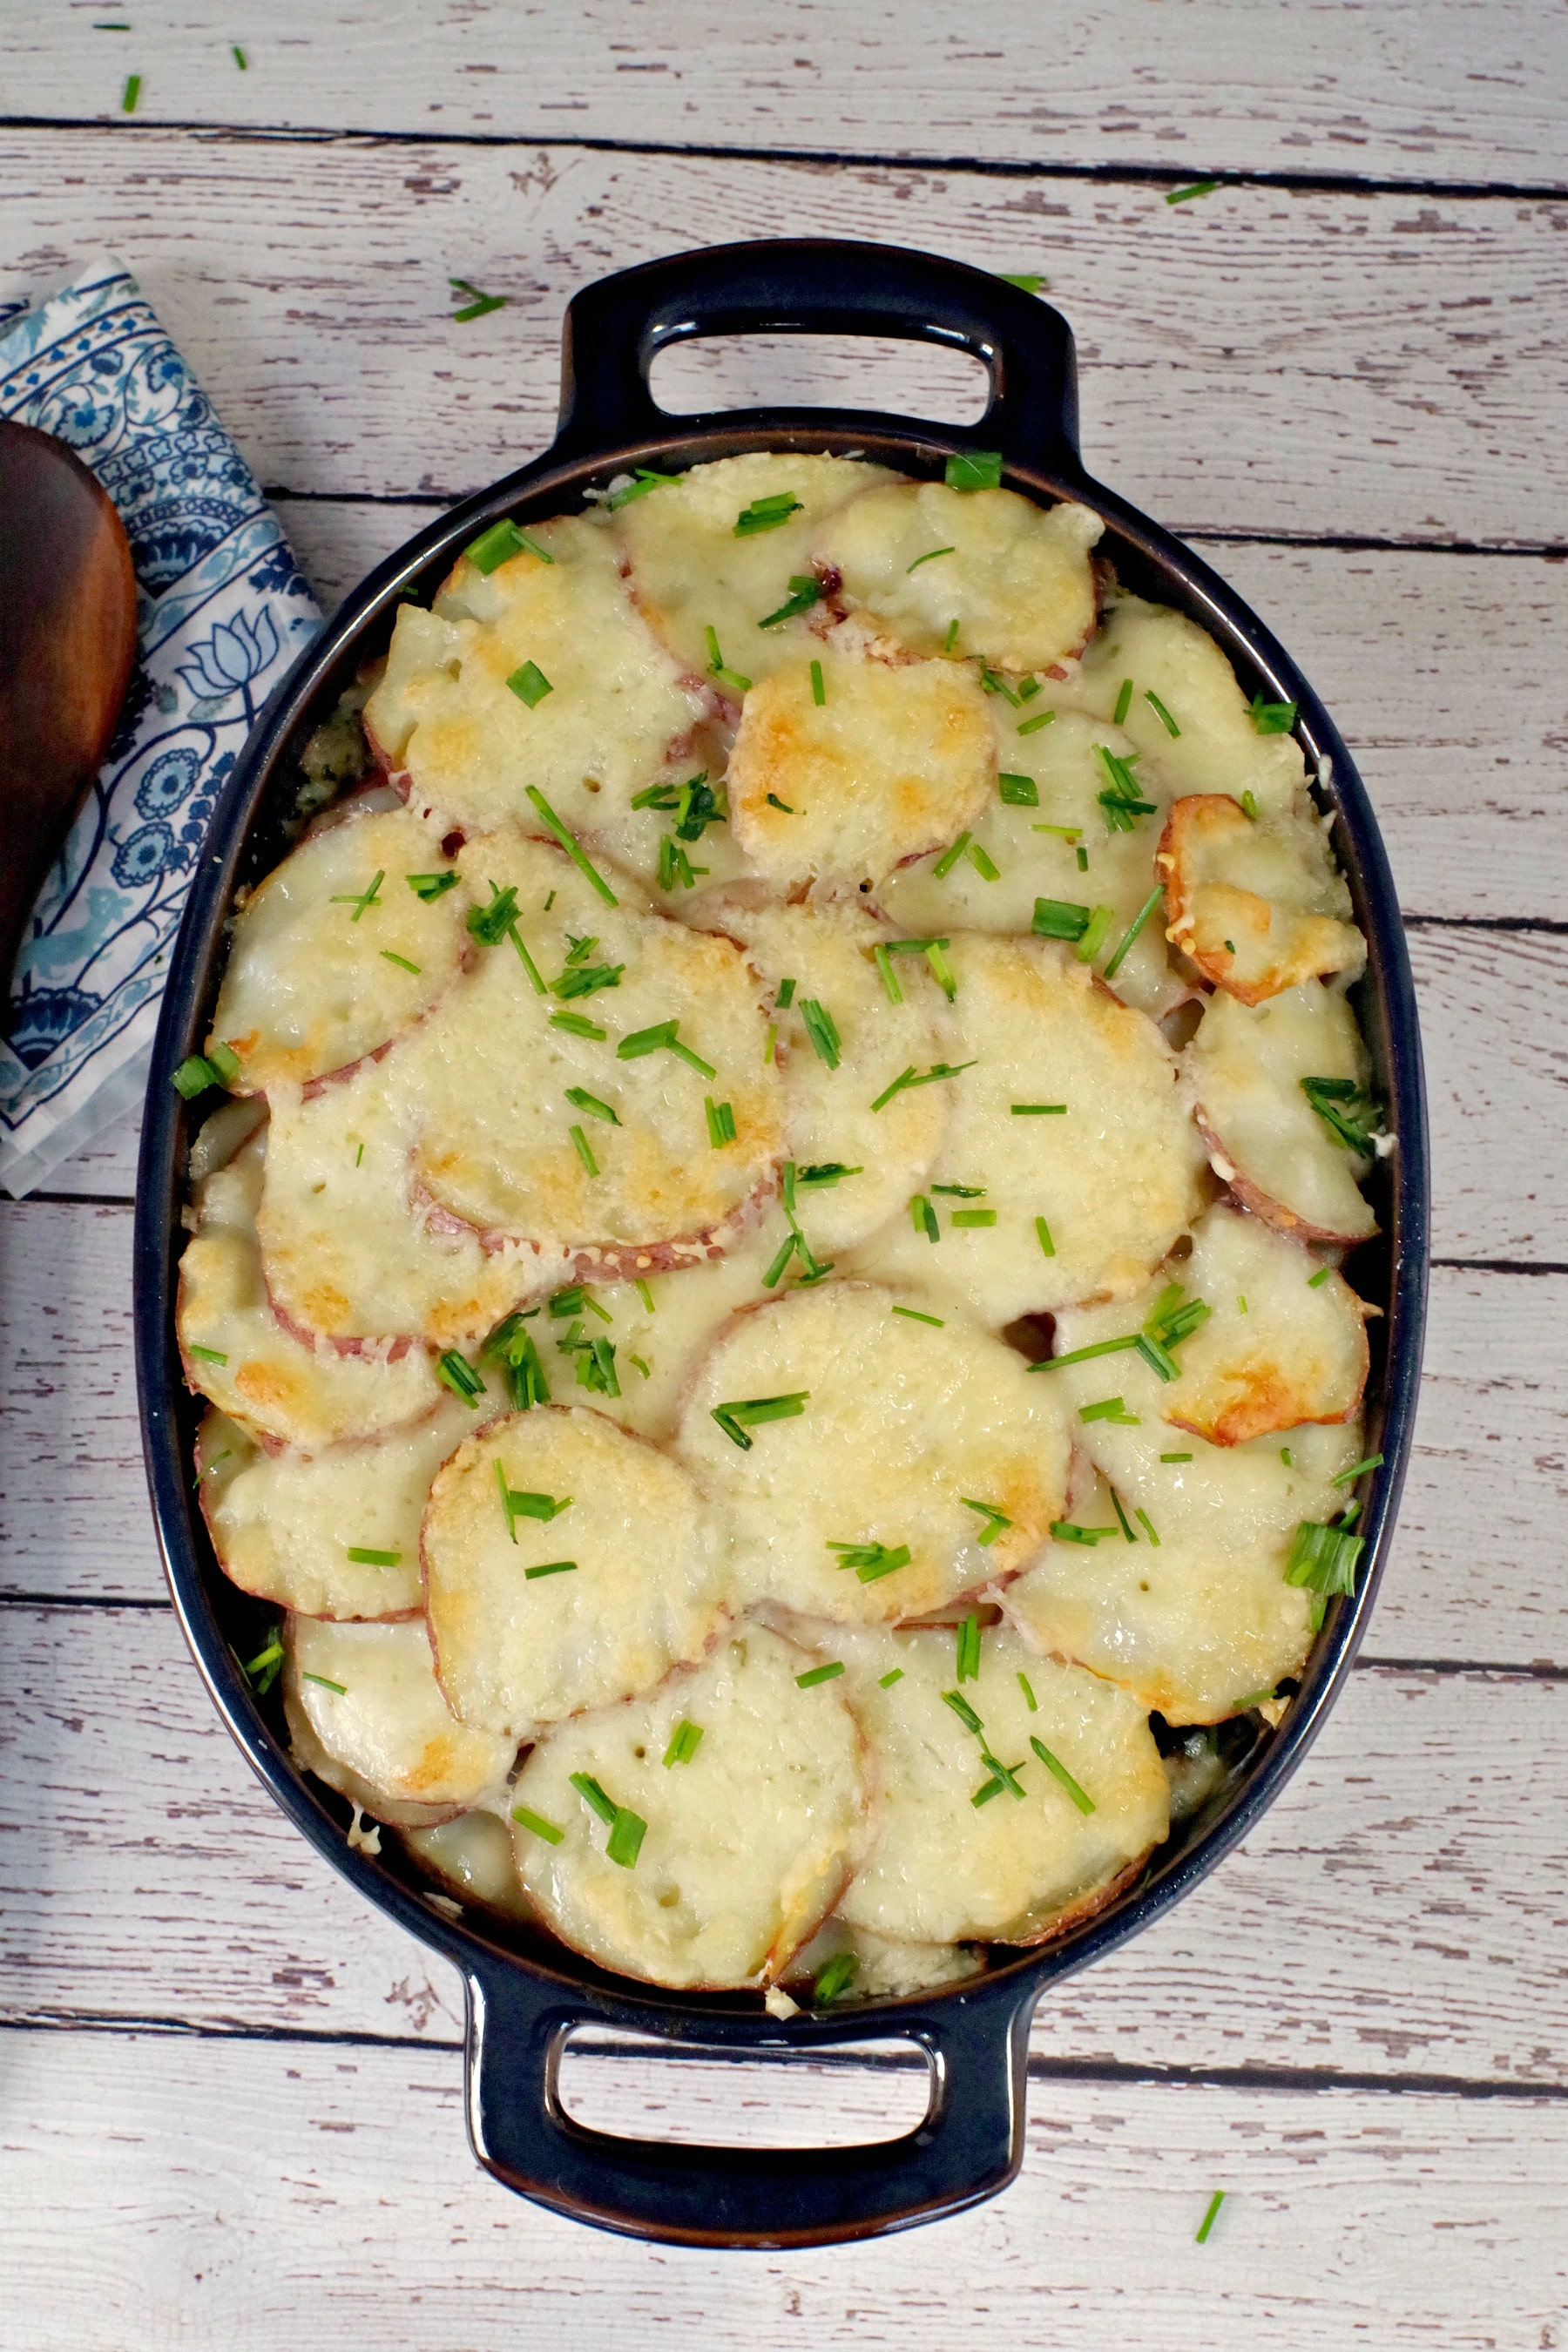 Potato casserole with spinach and beef in blue casserole dish